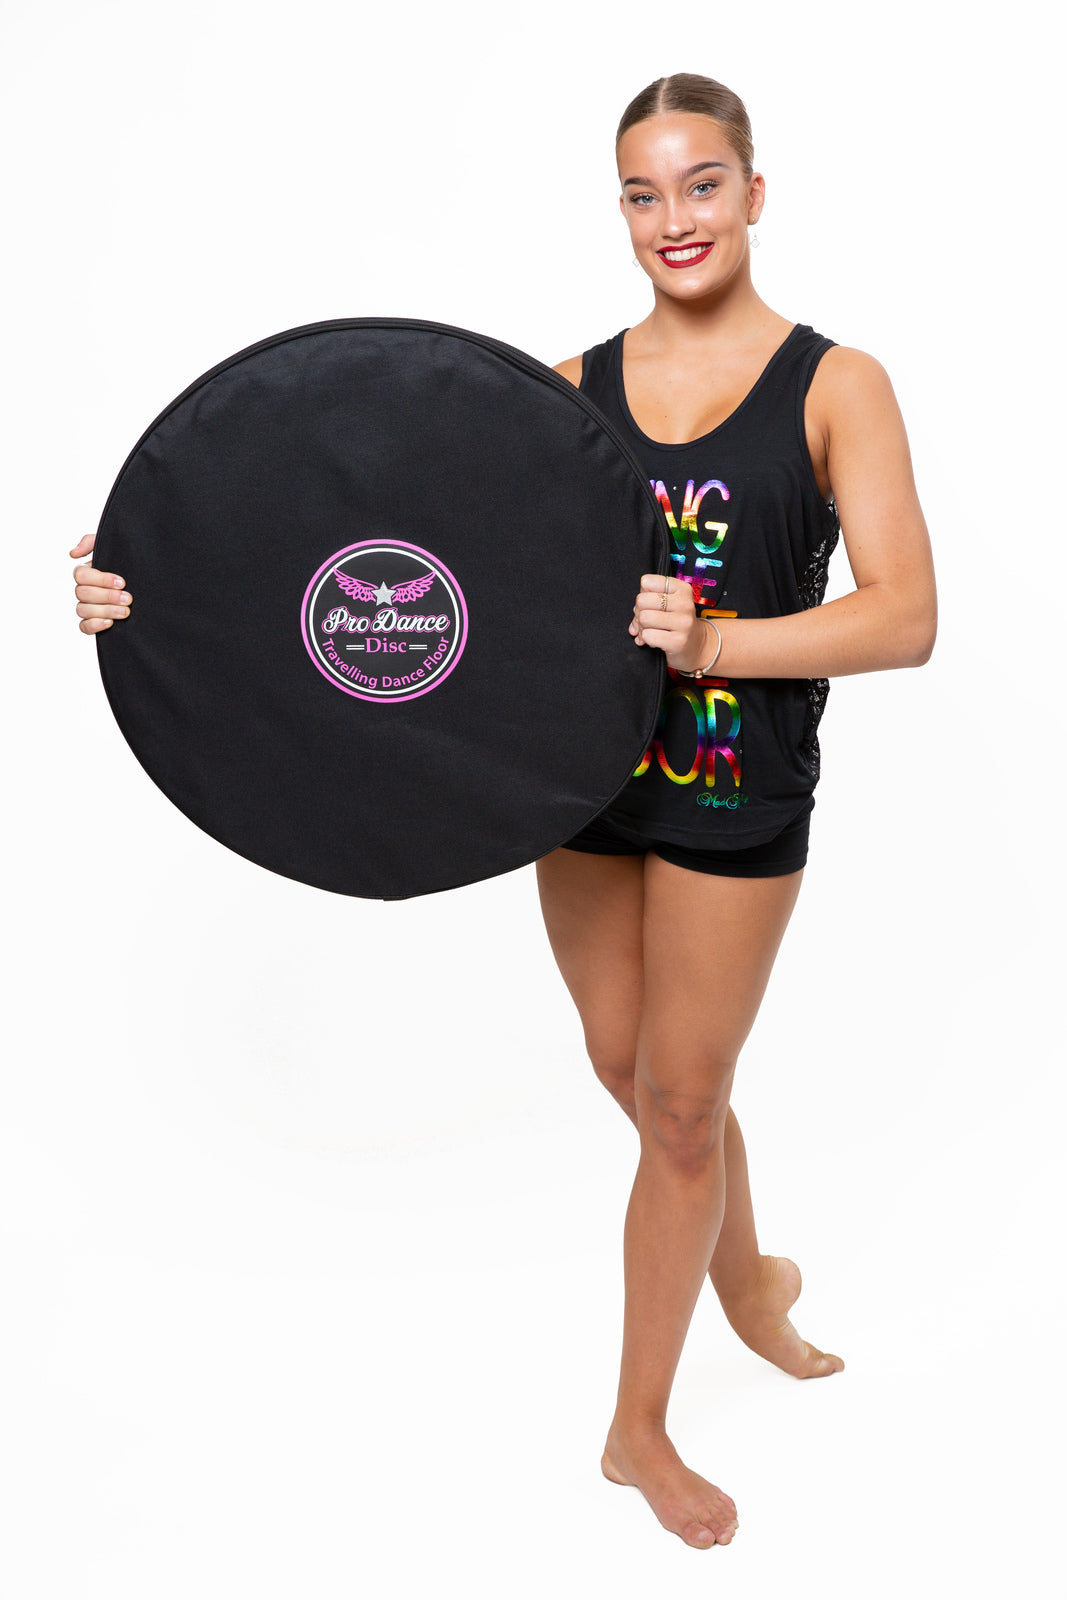 MAD ALLY PRO DANCE DISC - TRAVELLING DANCE FLOOR